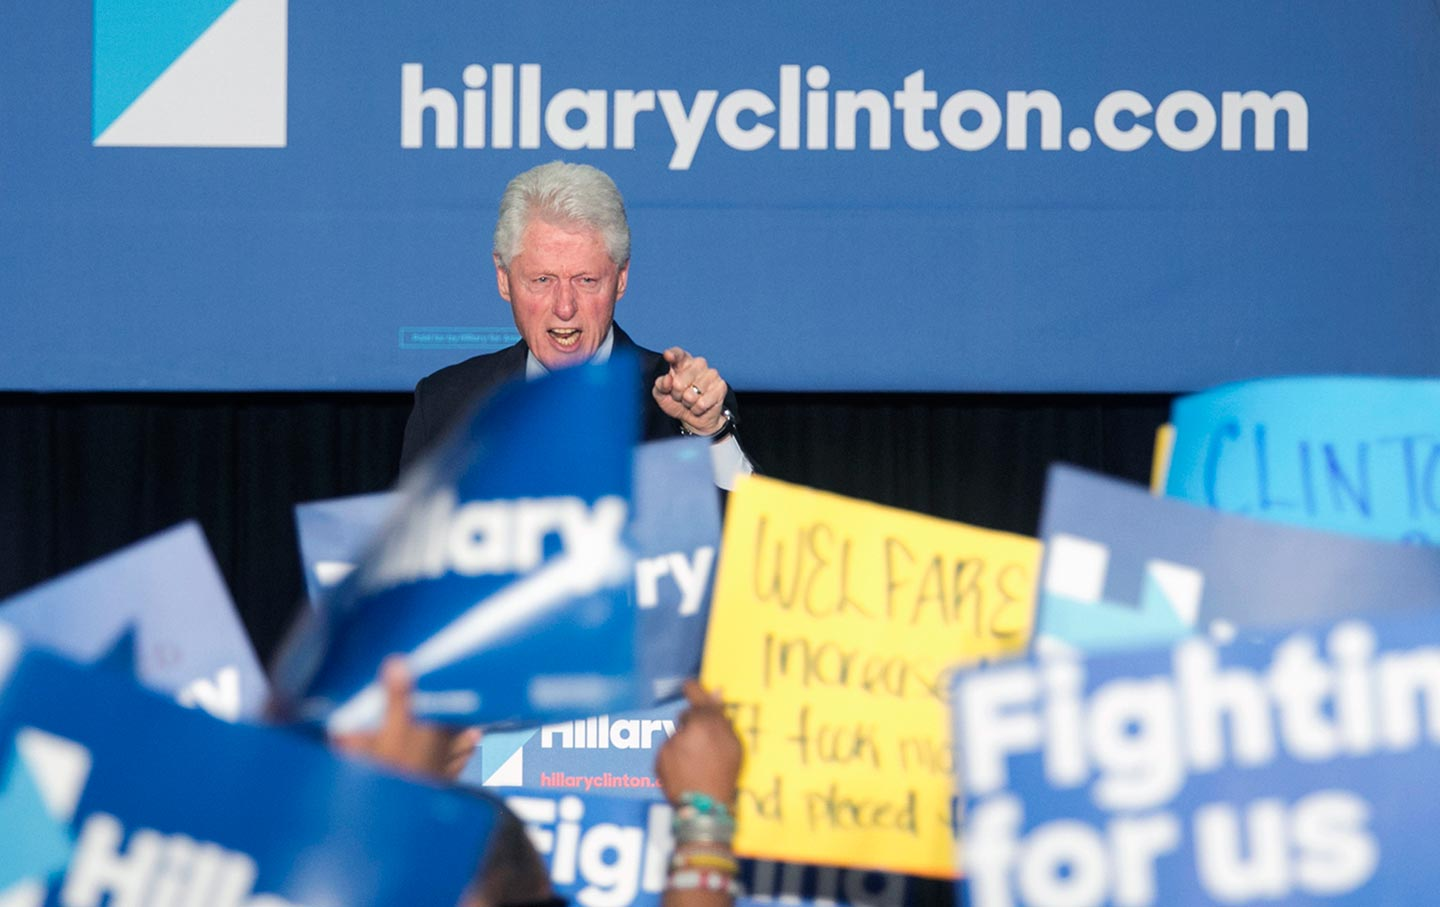 http://www.thenation.com/wp-content/uploads/2016/04/Bill_Clinton_protest_ap_img.jpg